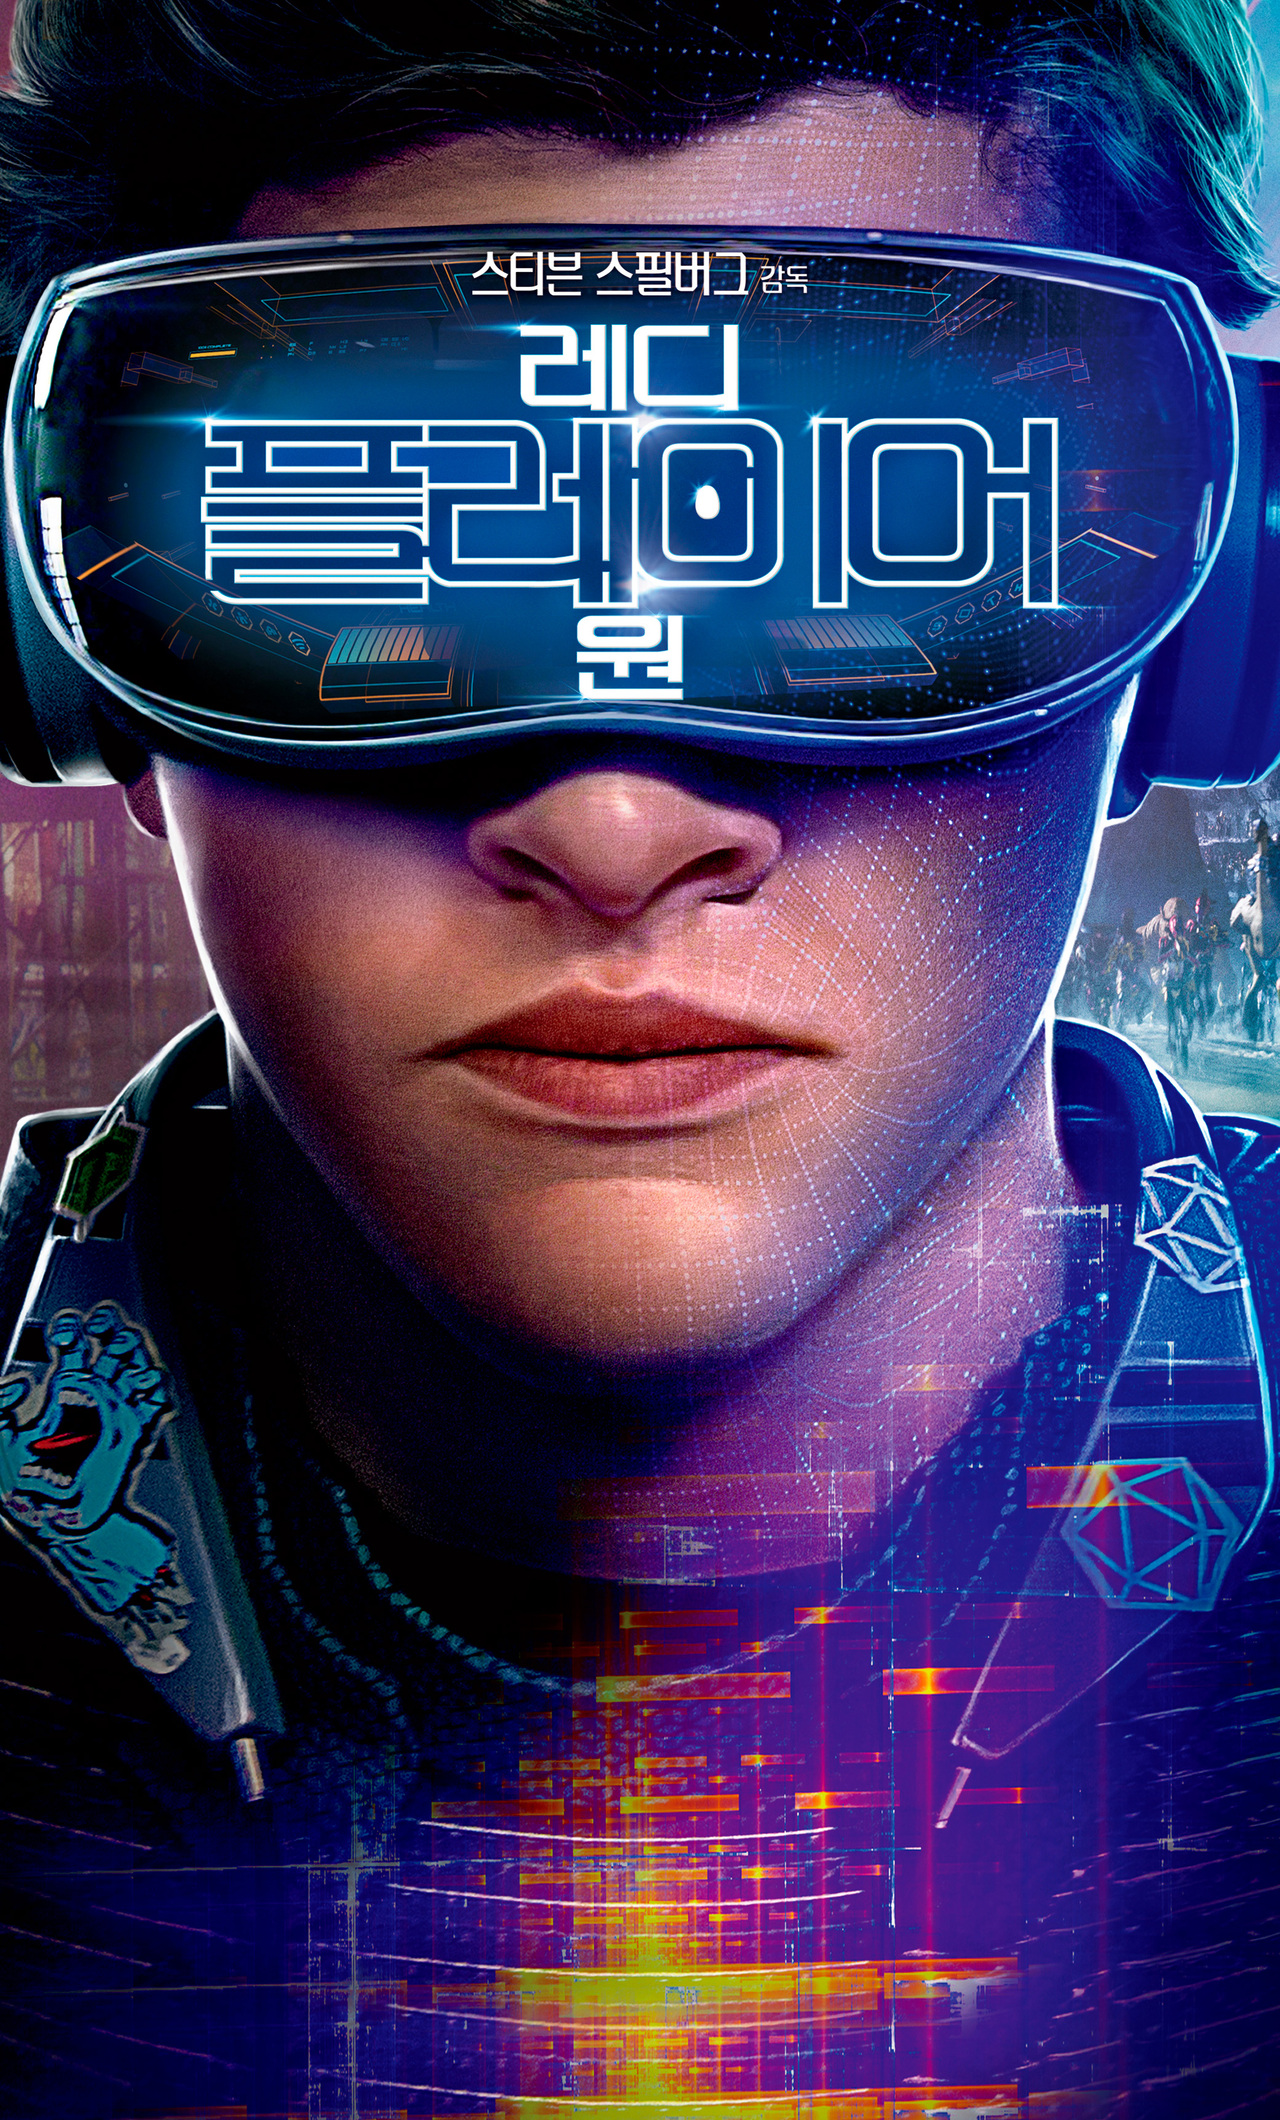 1280x2120 4k Ready Player One Movie Poster iPhone 6+ HD 4k ...